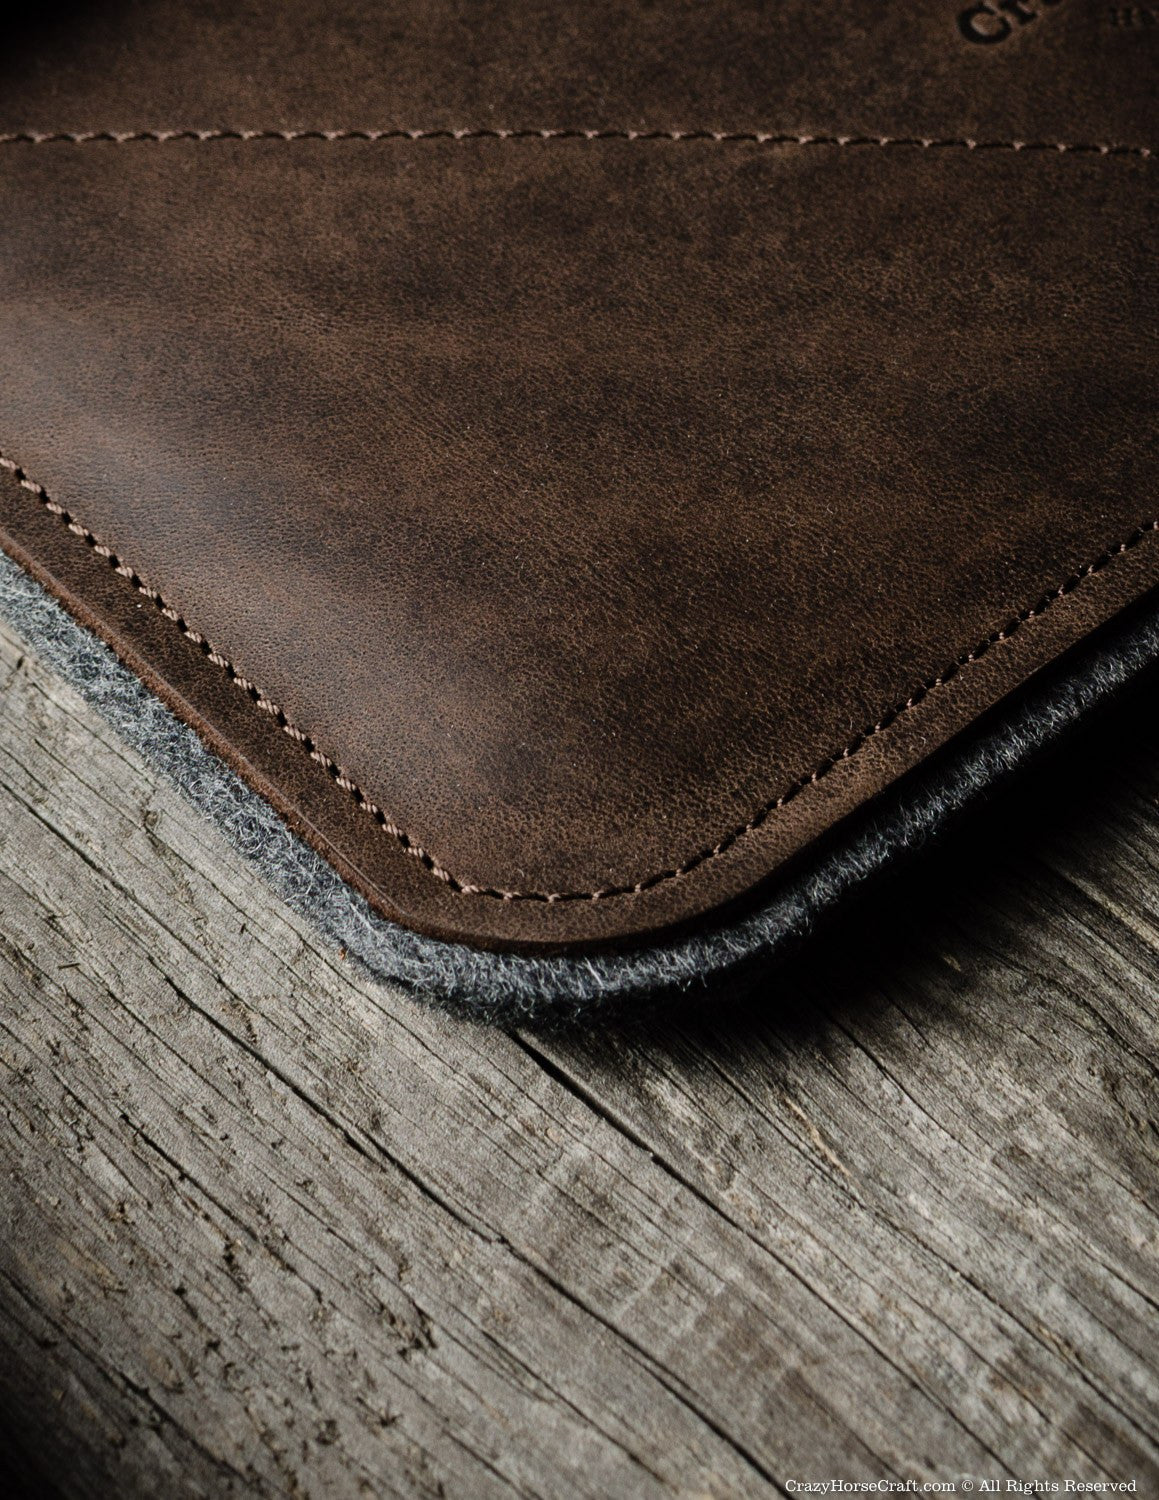 Leather iPad Case details front